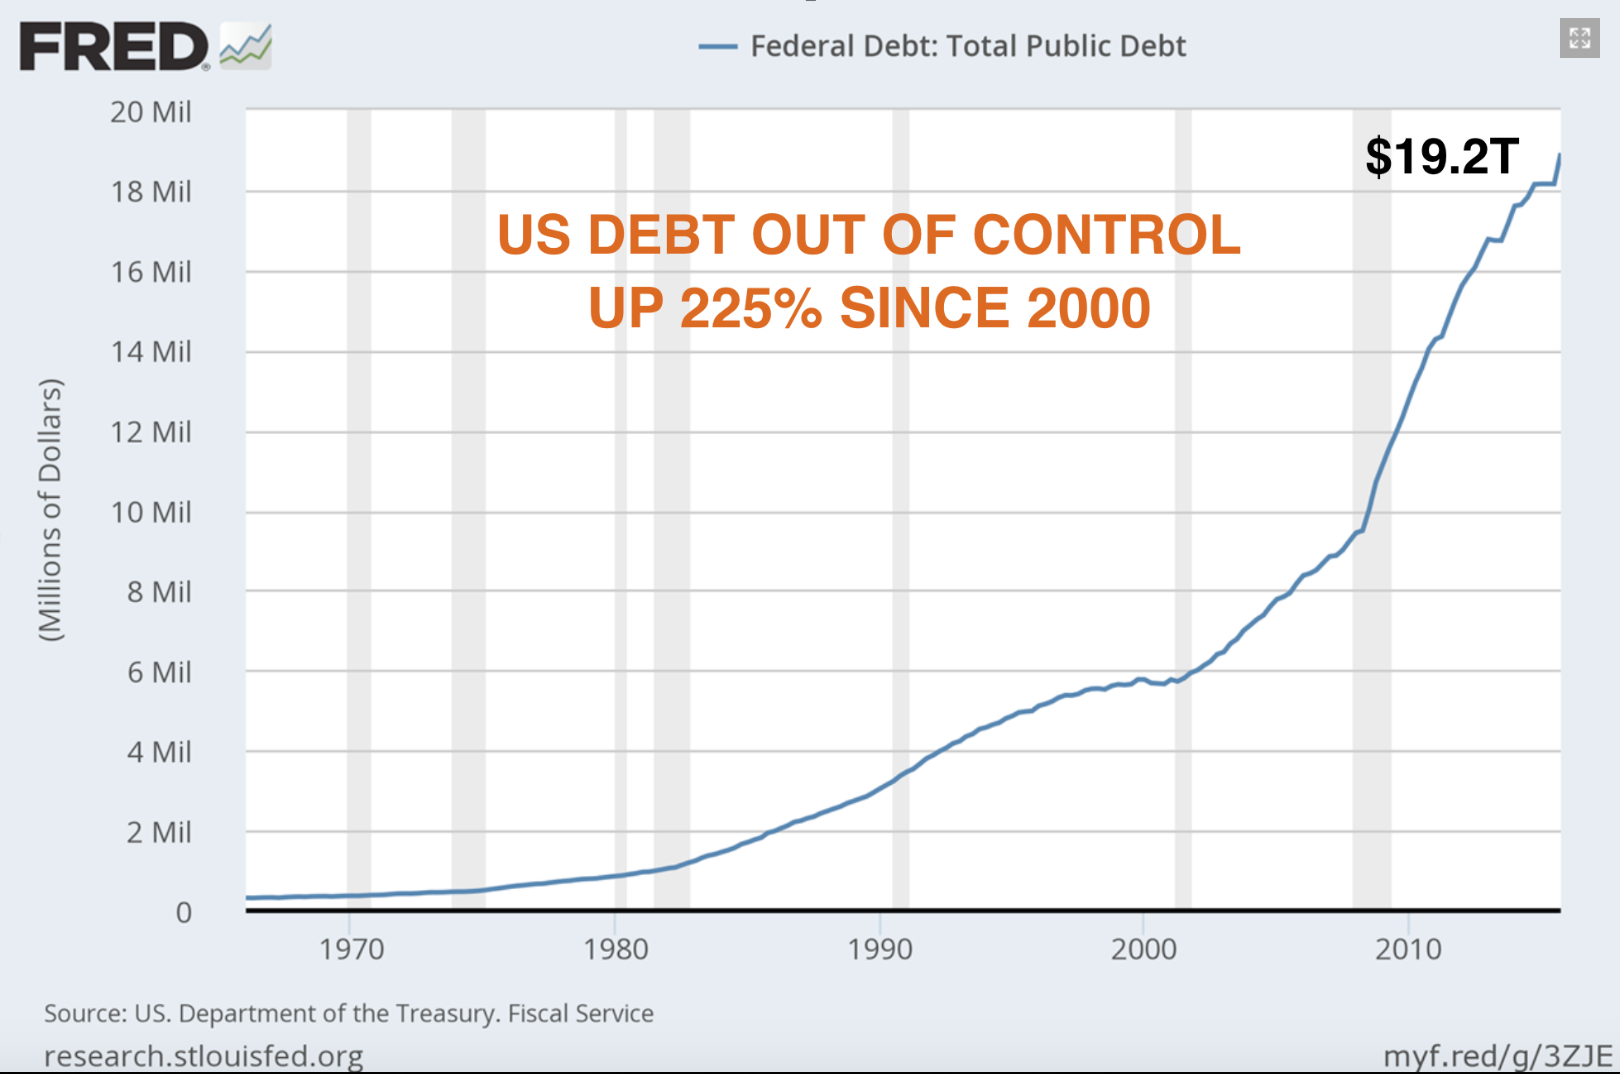 US Debt out of control